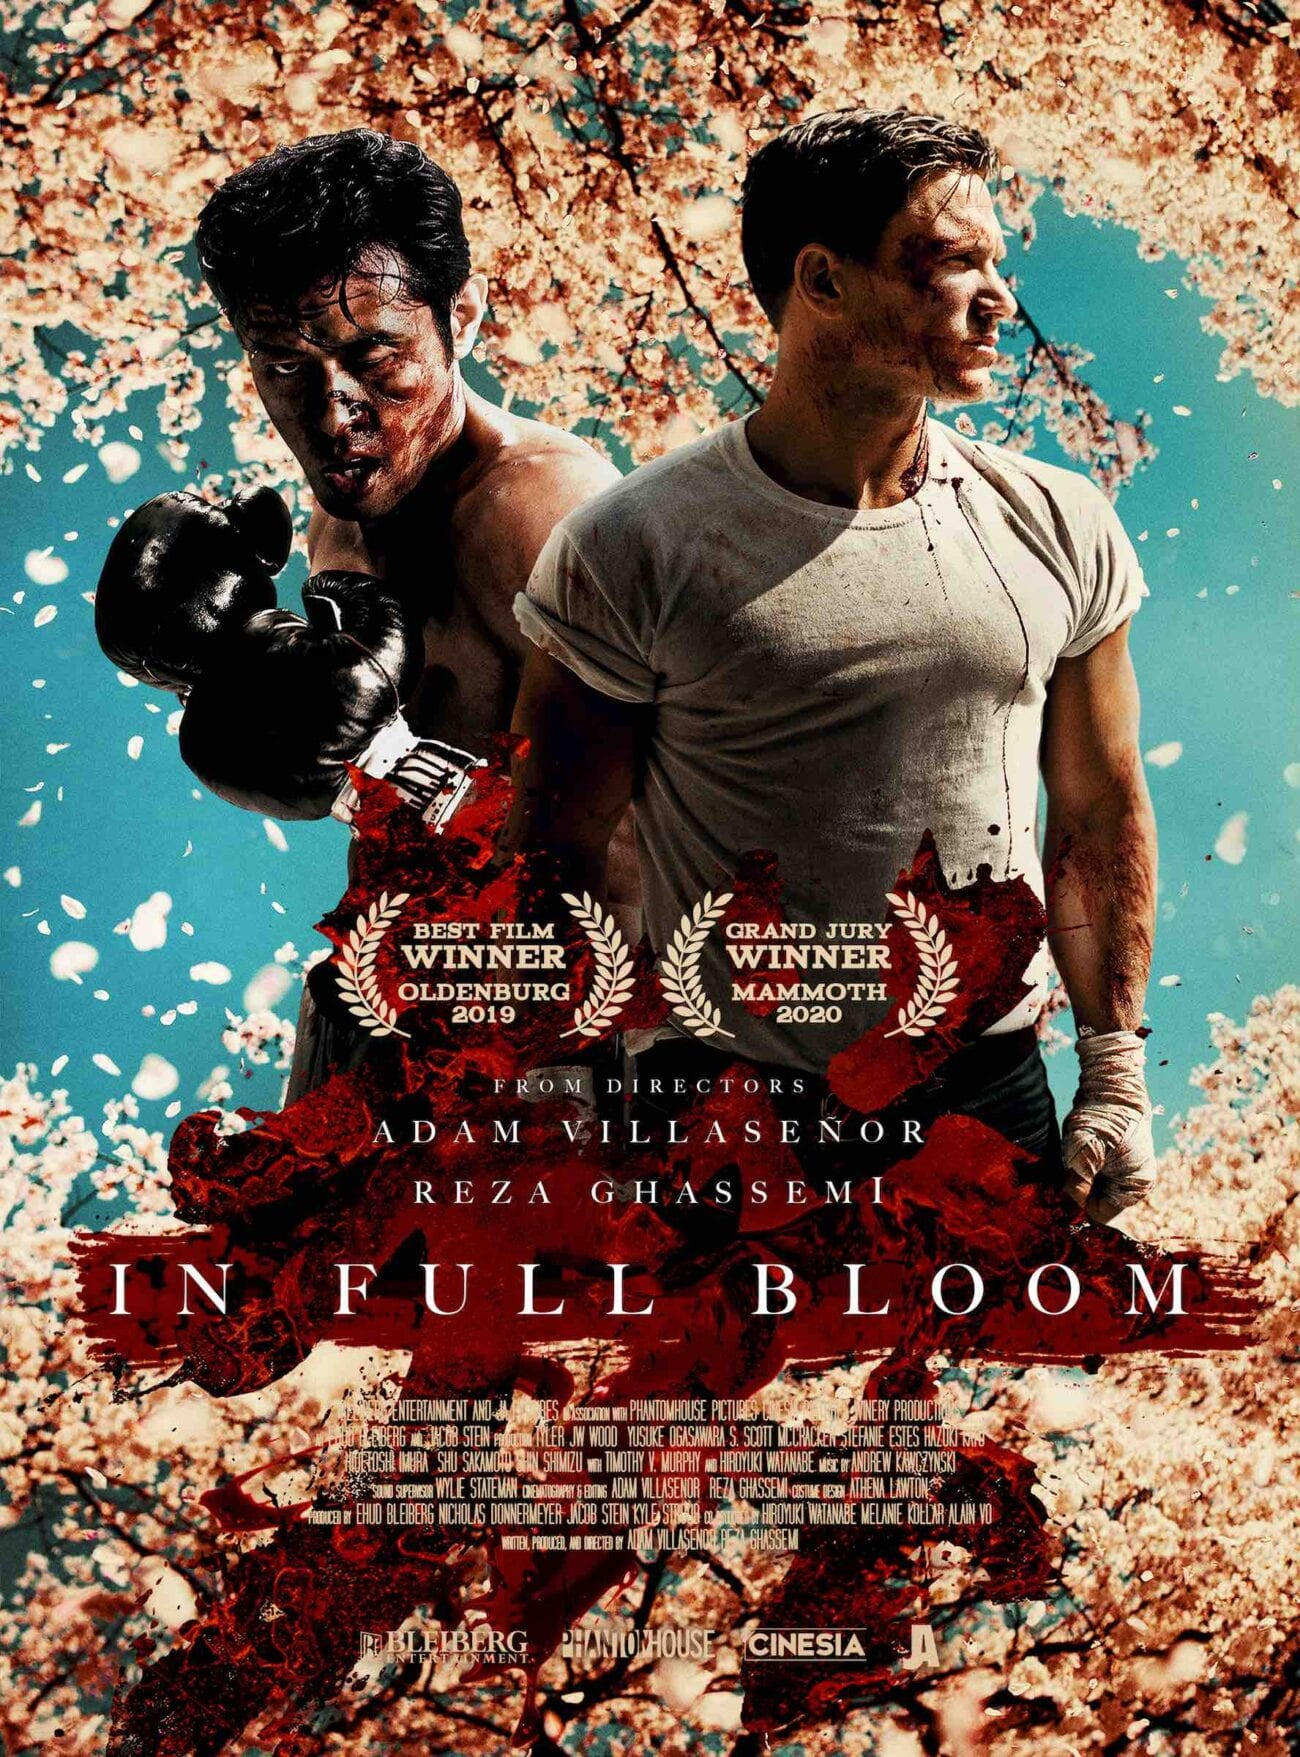 We sat down with both Adam VillaSeñor and Reza Ghassemi to discuss 'In Full Bloom' and their time working together over the years.